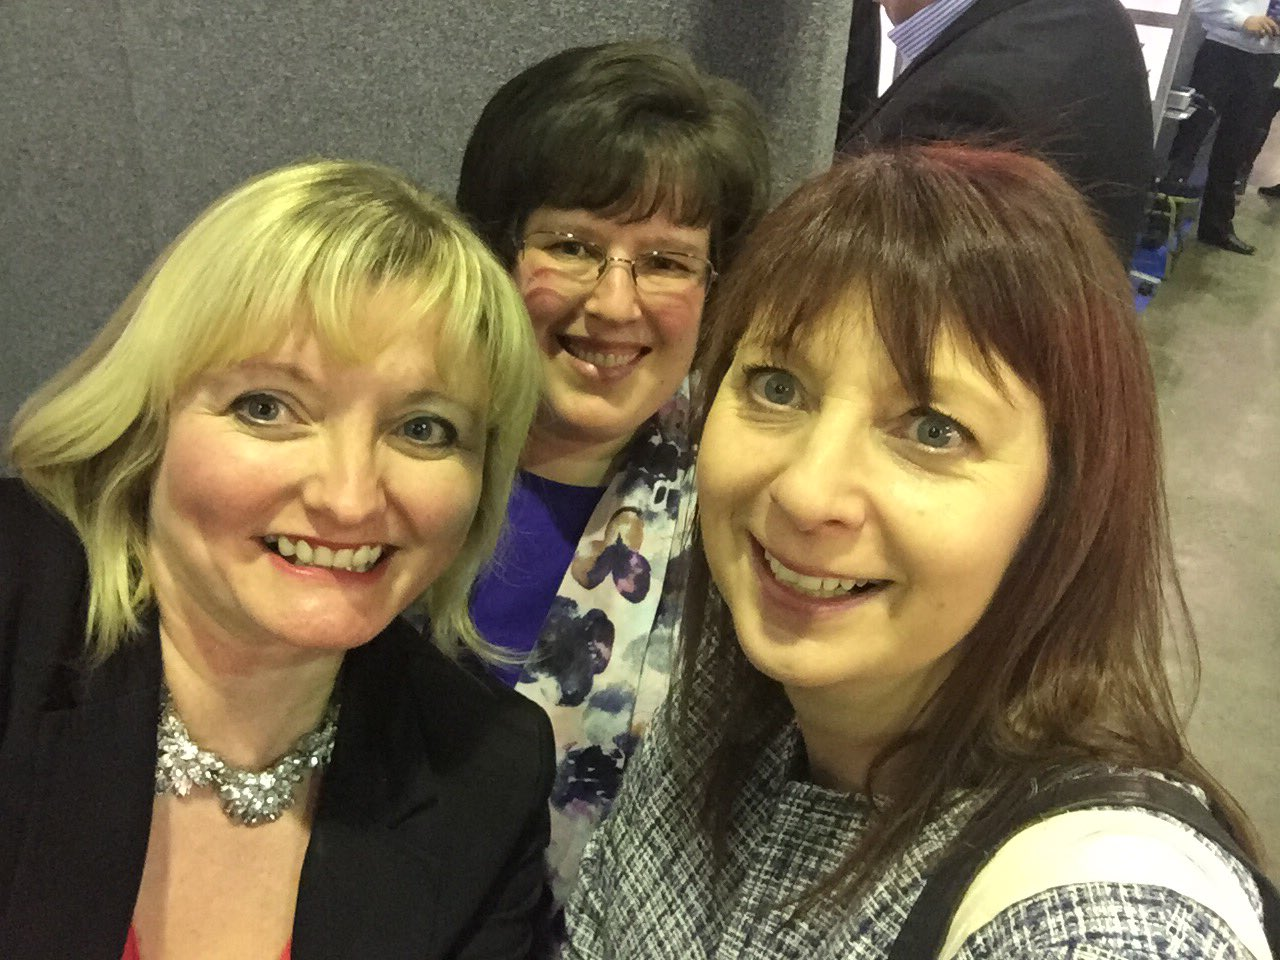 RT @PassionMktg: Lovely ladies @finances1stlady and @marionparrishhr visit our stand @LoveBusinessBuz :) https://t.co/Cb8sdpNd99